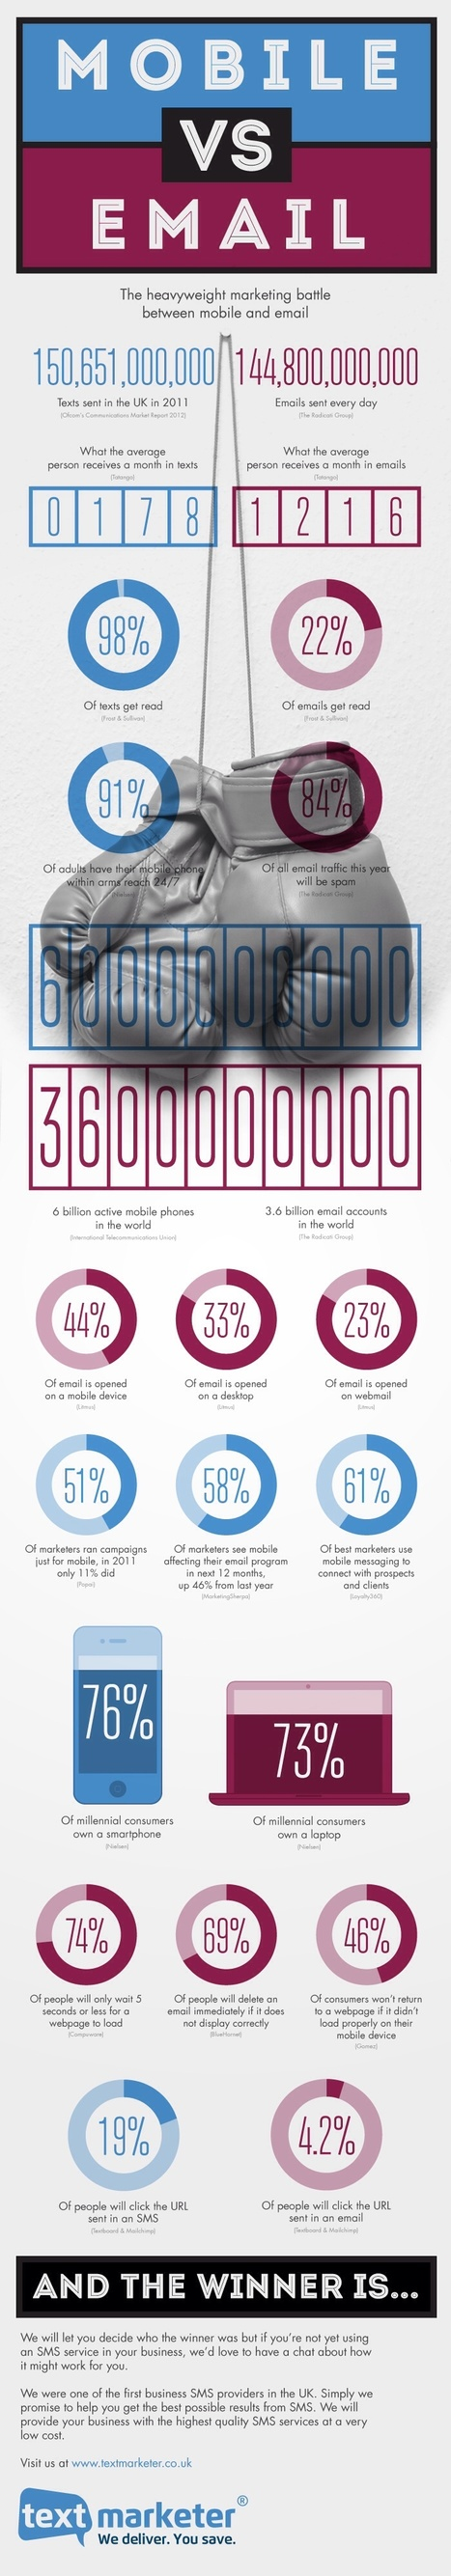 Mobile VS Email Statistics – Infographic   MarketingHits   Scoop.it